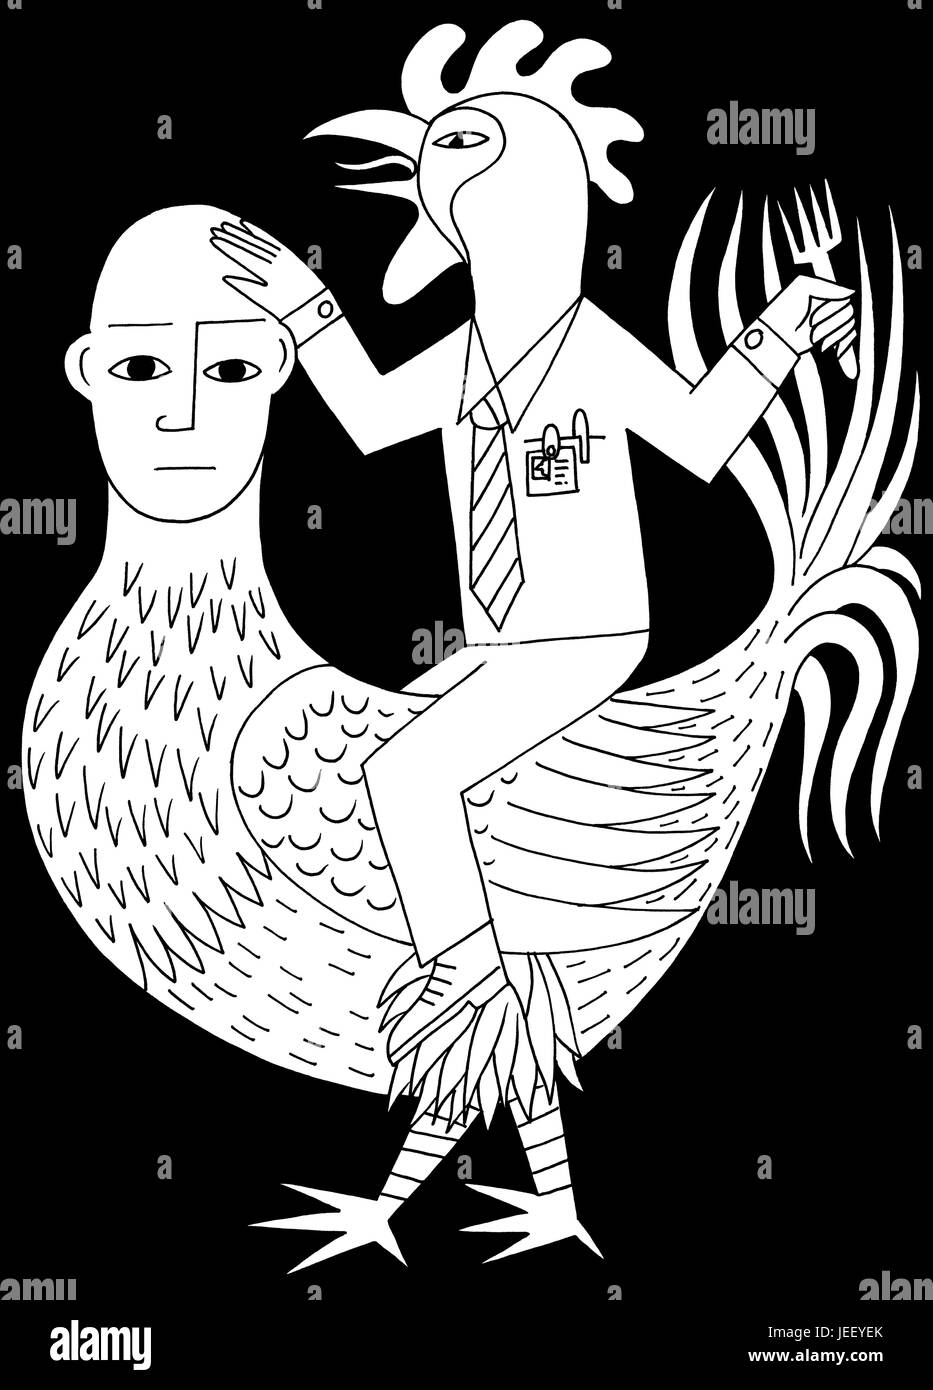 My chicken. A black and white editorial illustration. - Stock Image